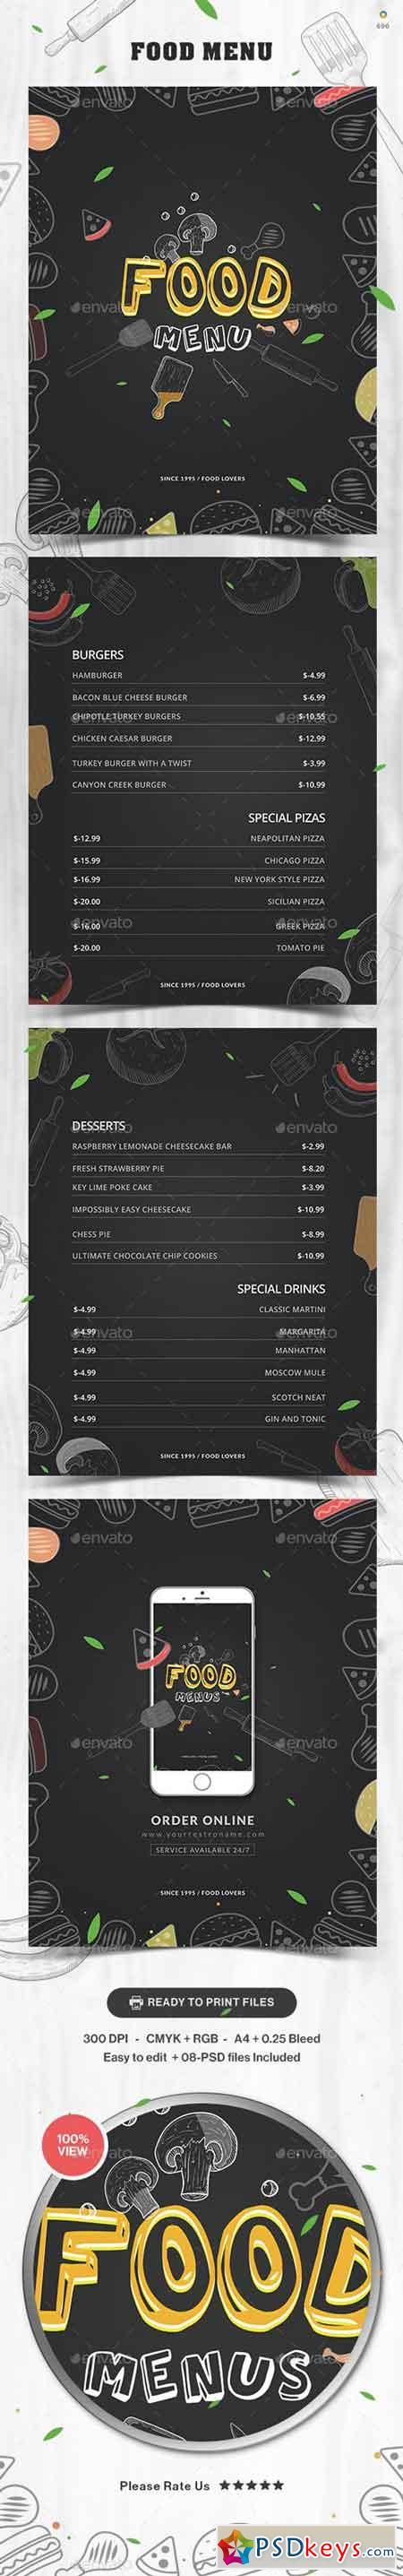 Food Menu Design 20891704